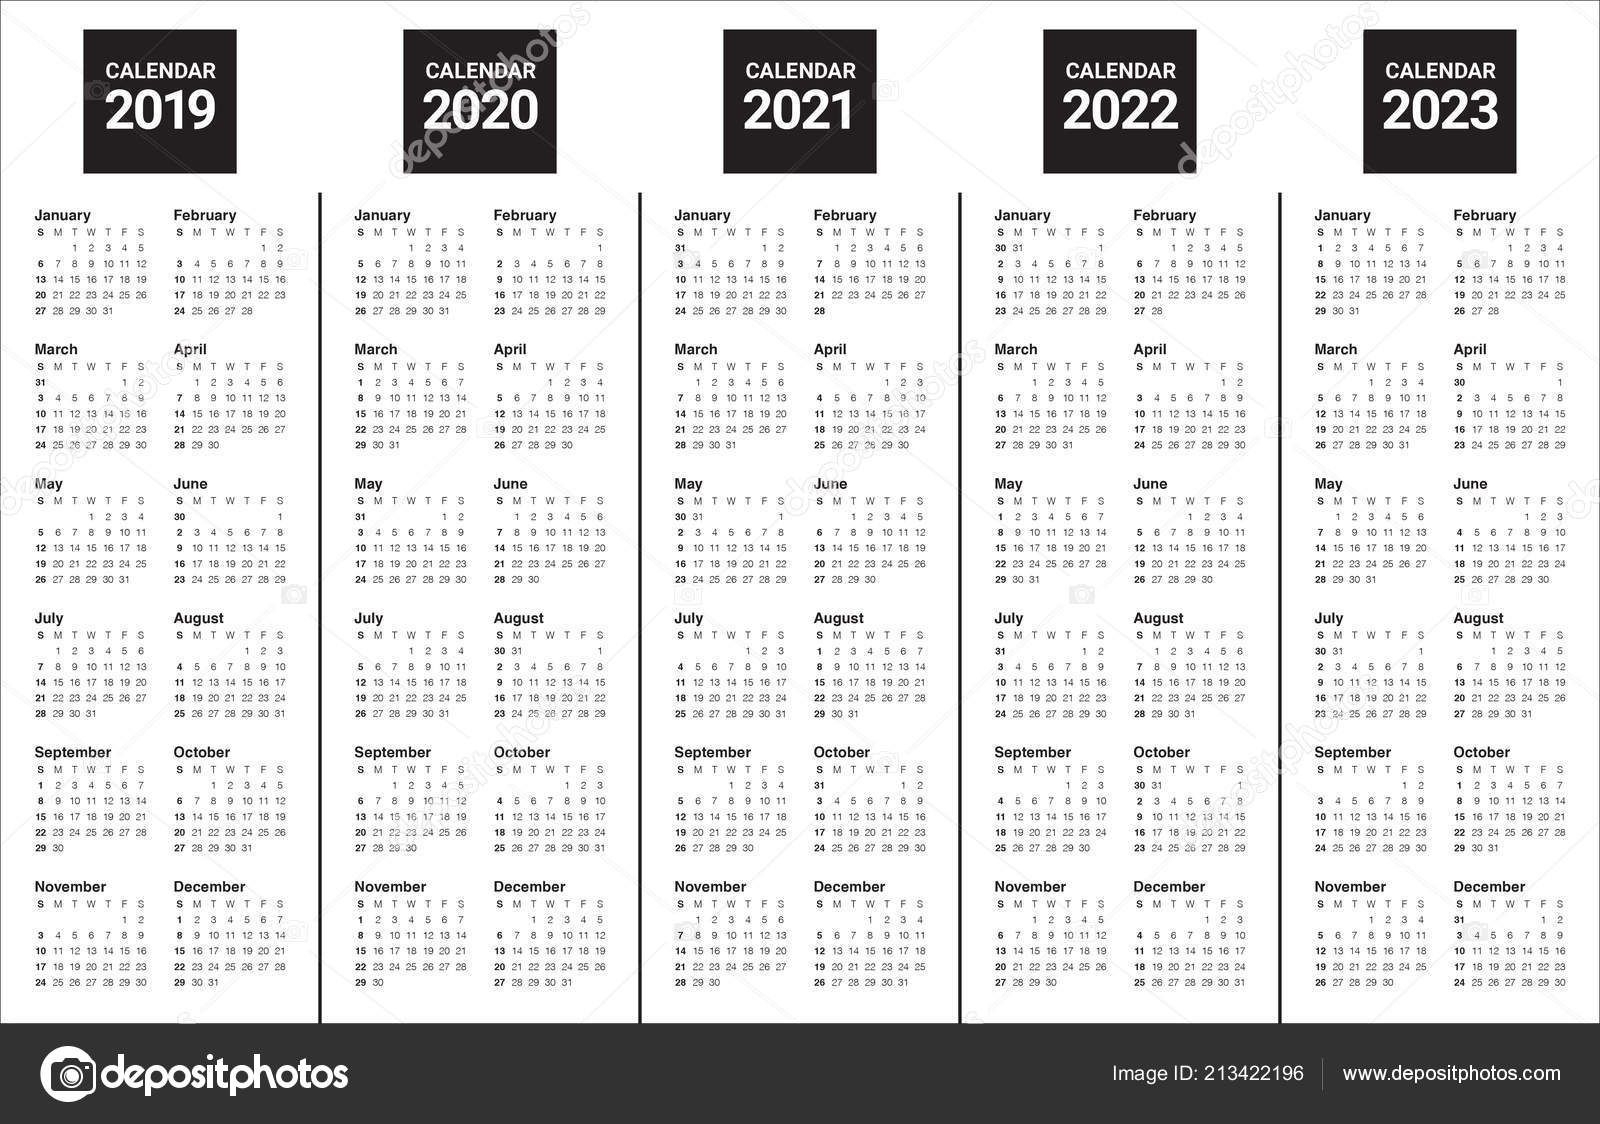 Printable Calendar For 2019/2020/2021/2022/2023 In 2020 within Calendars 2019 2020 2021 2022 2023